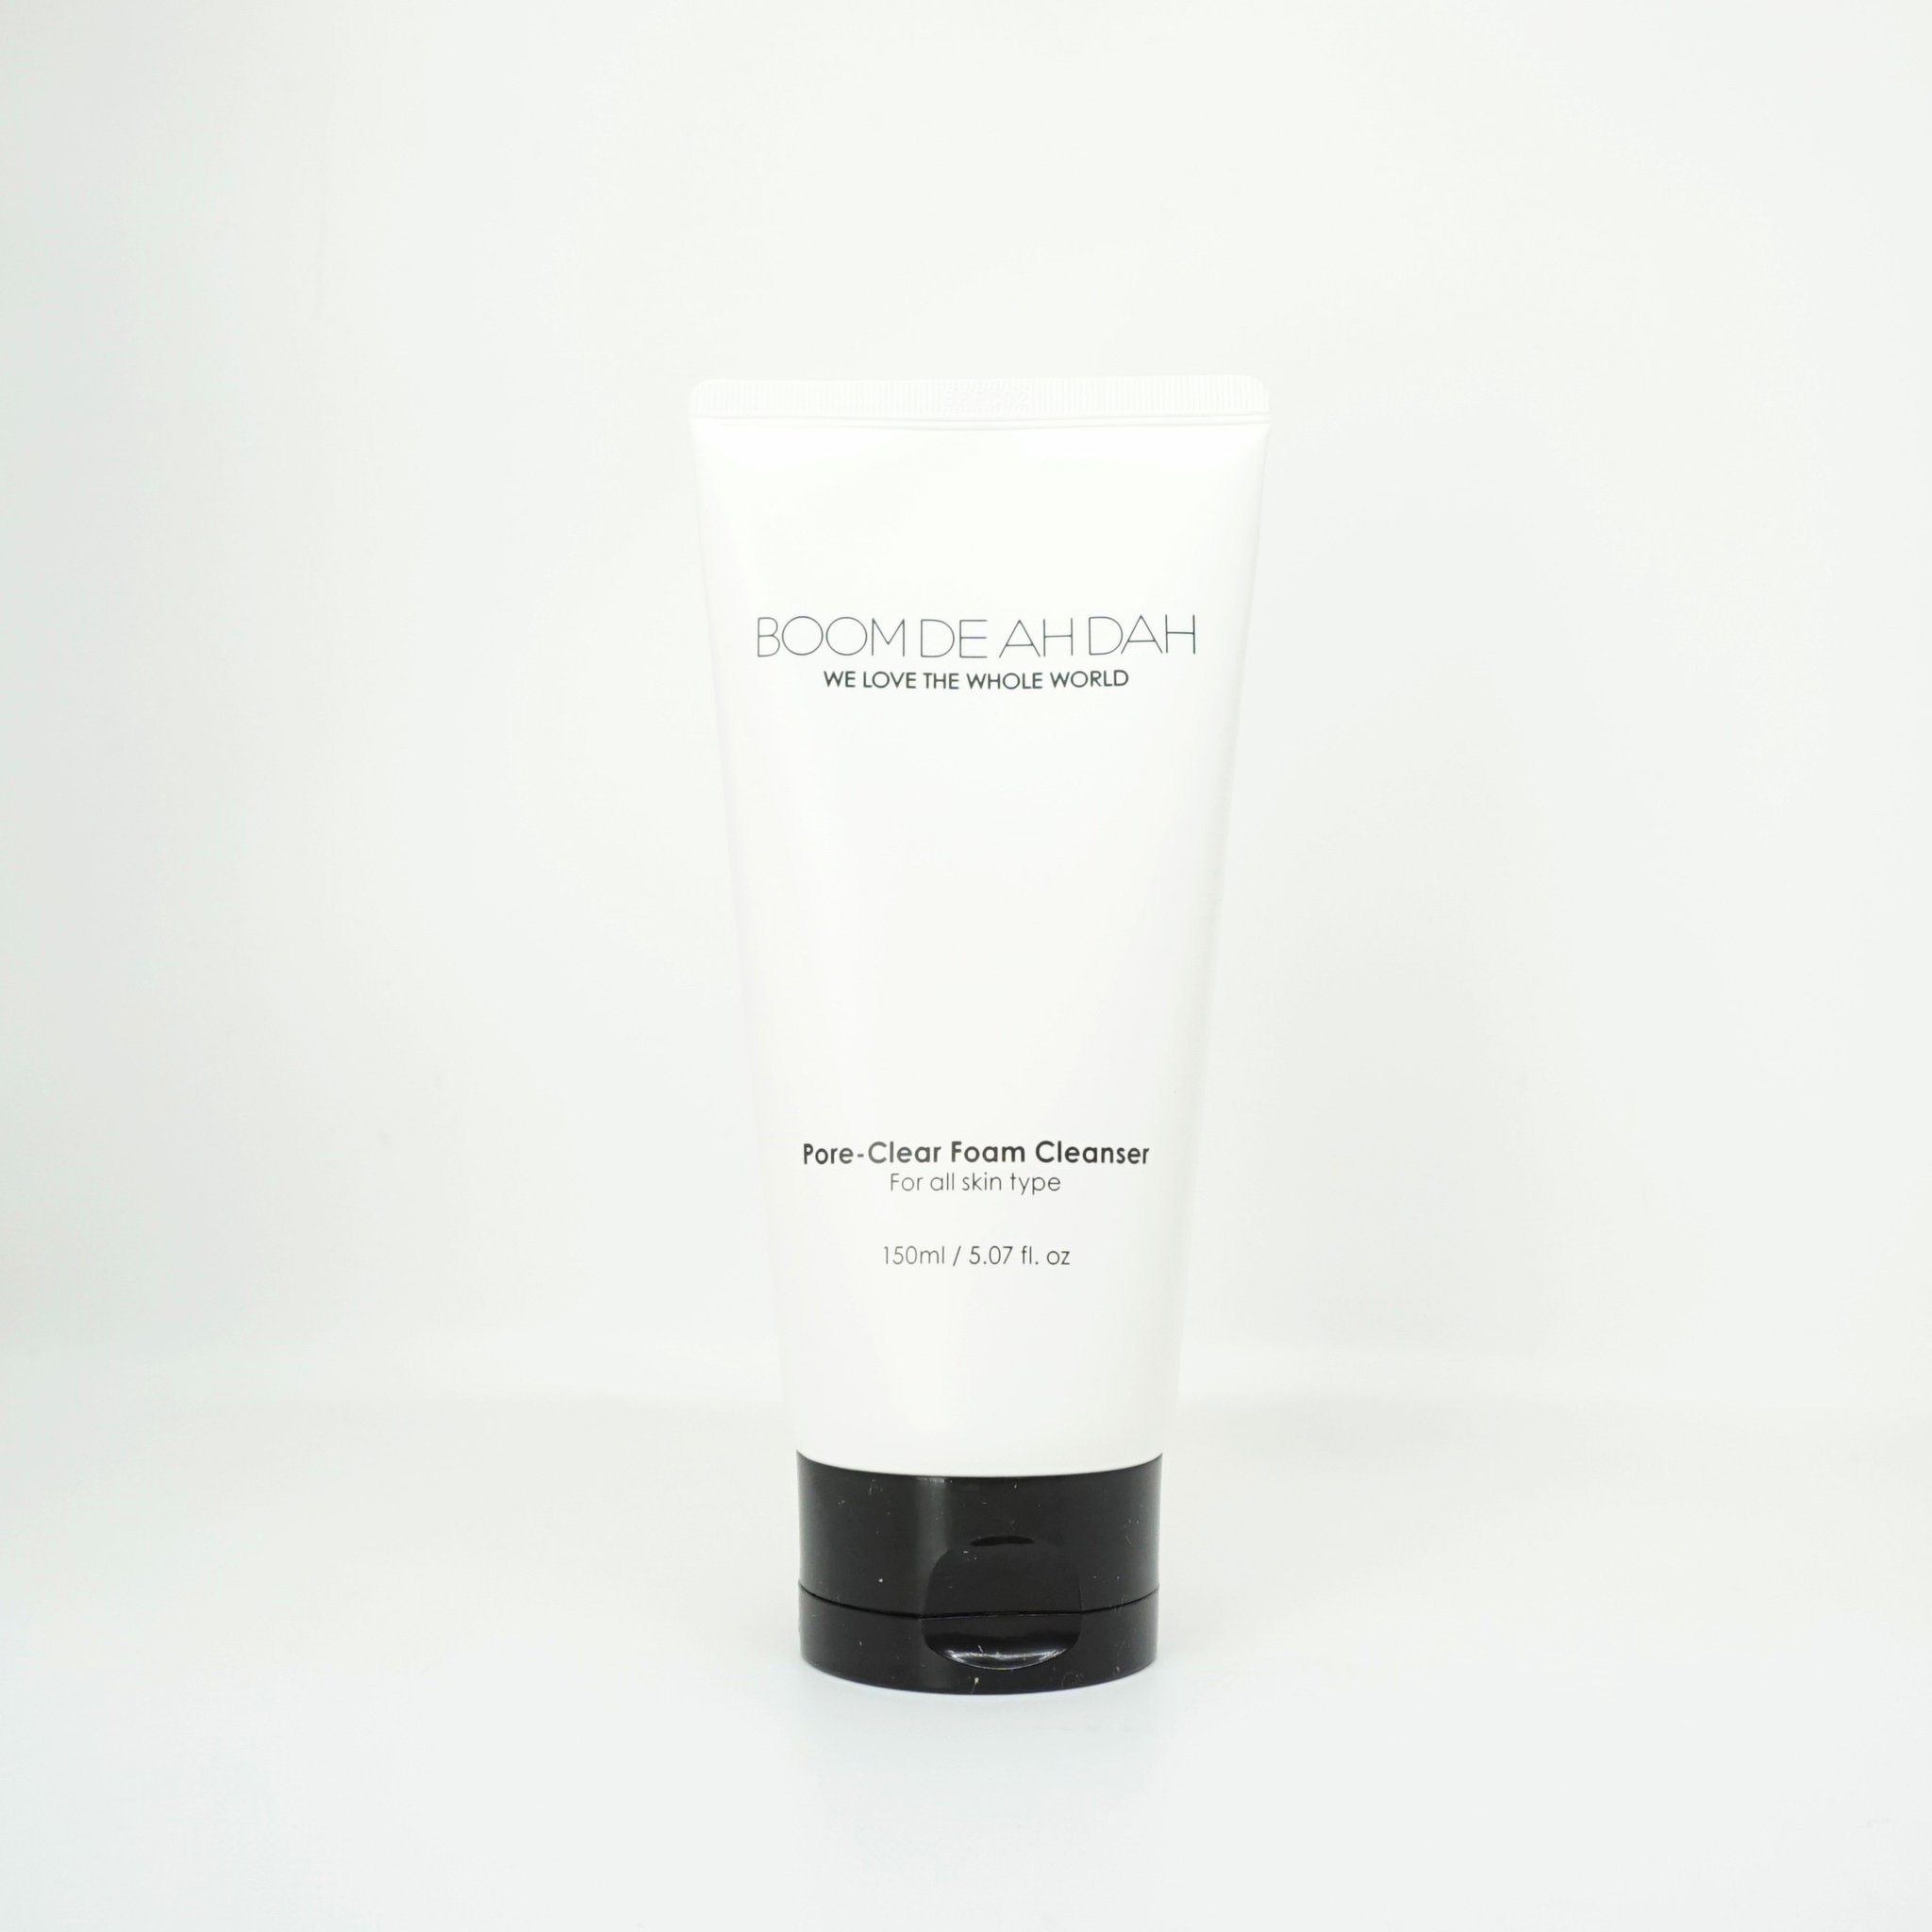 related product products/images/BOOMDEAHDAH-PoreClearFoamCleanser.jpg